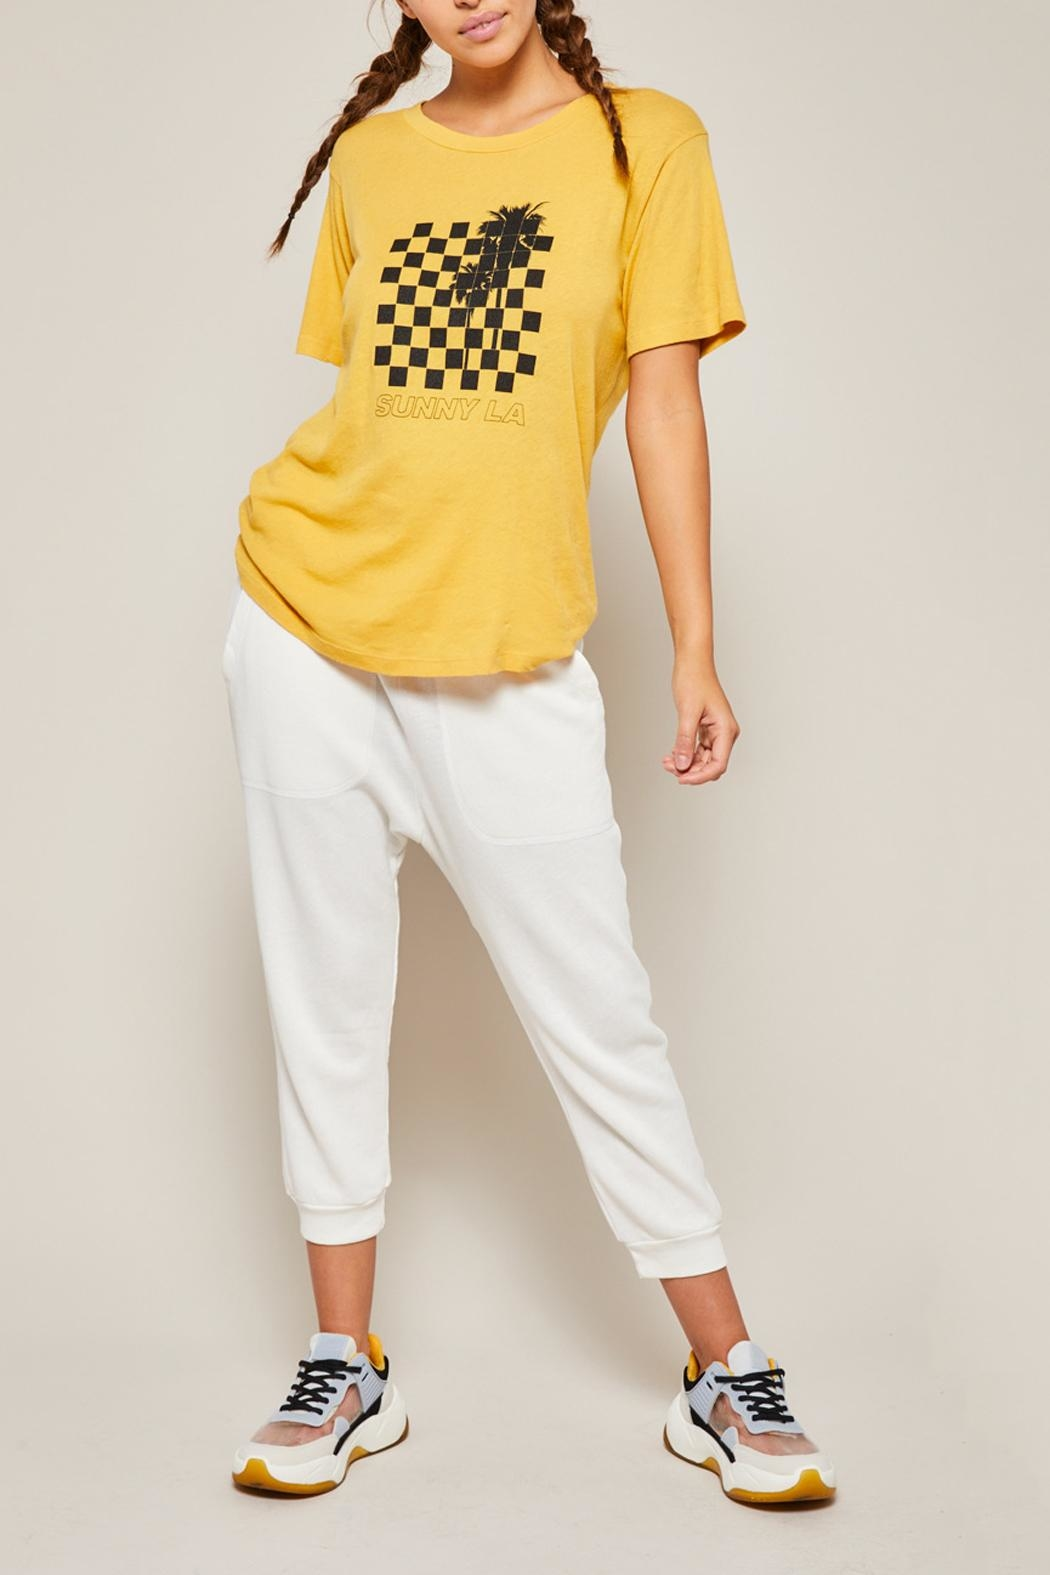 All Things Fabulous Sunny La Tee - Side Cropped Image